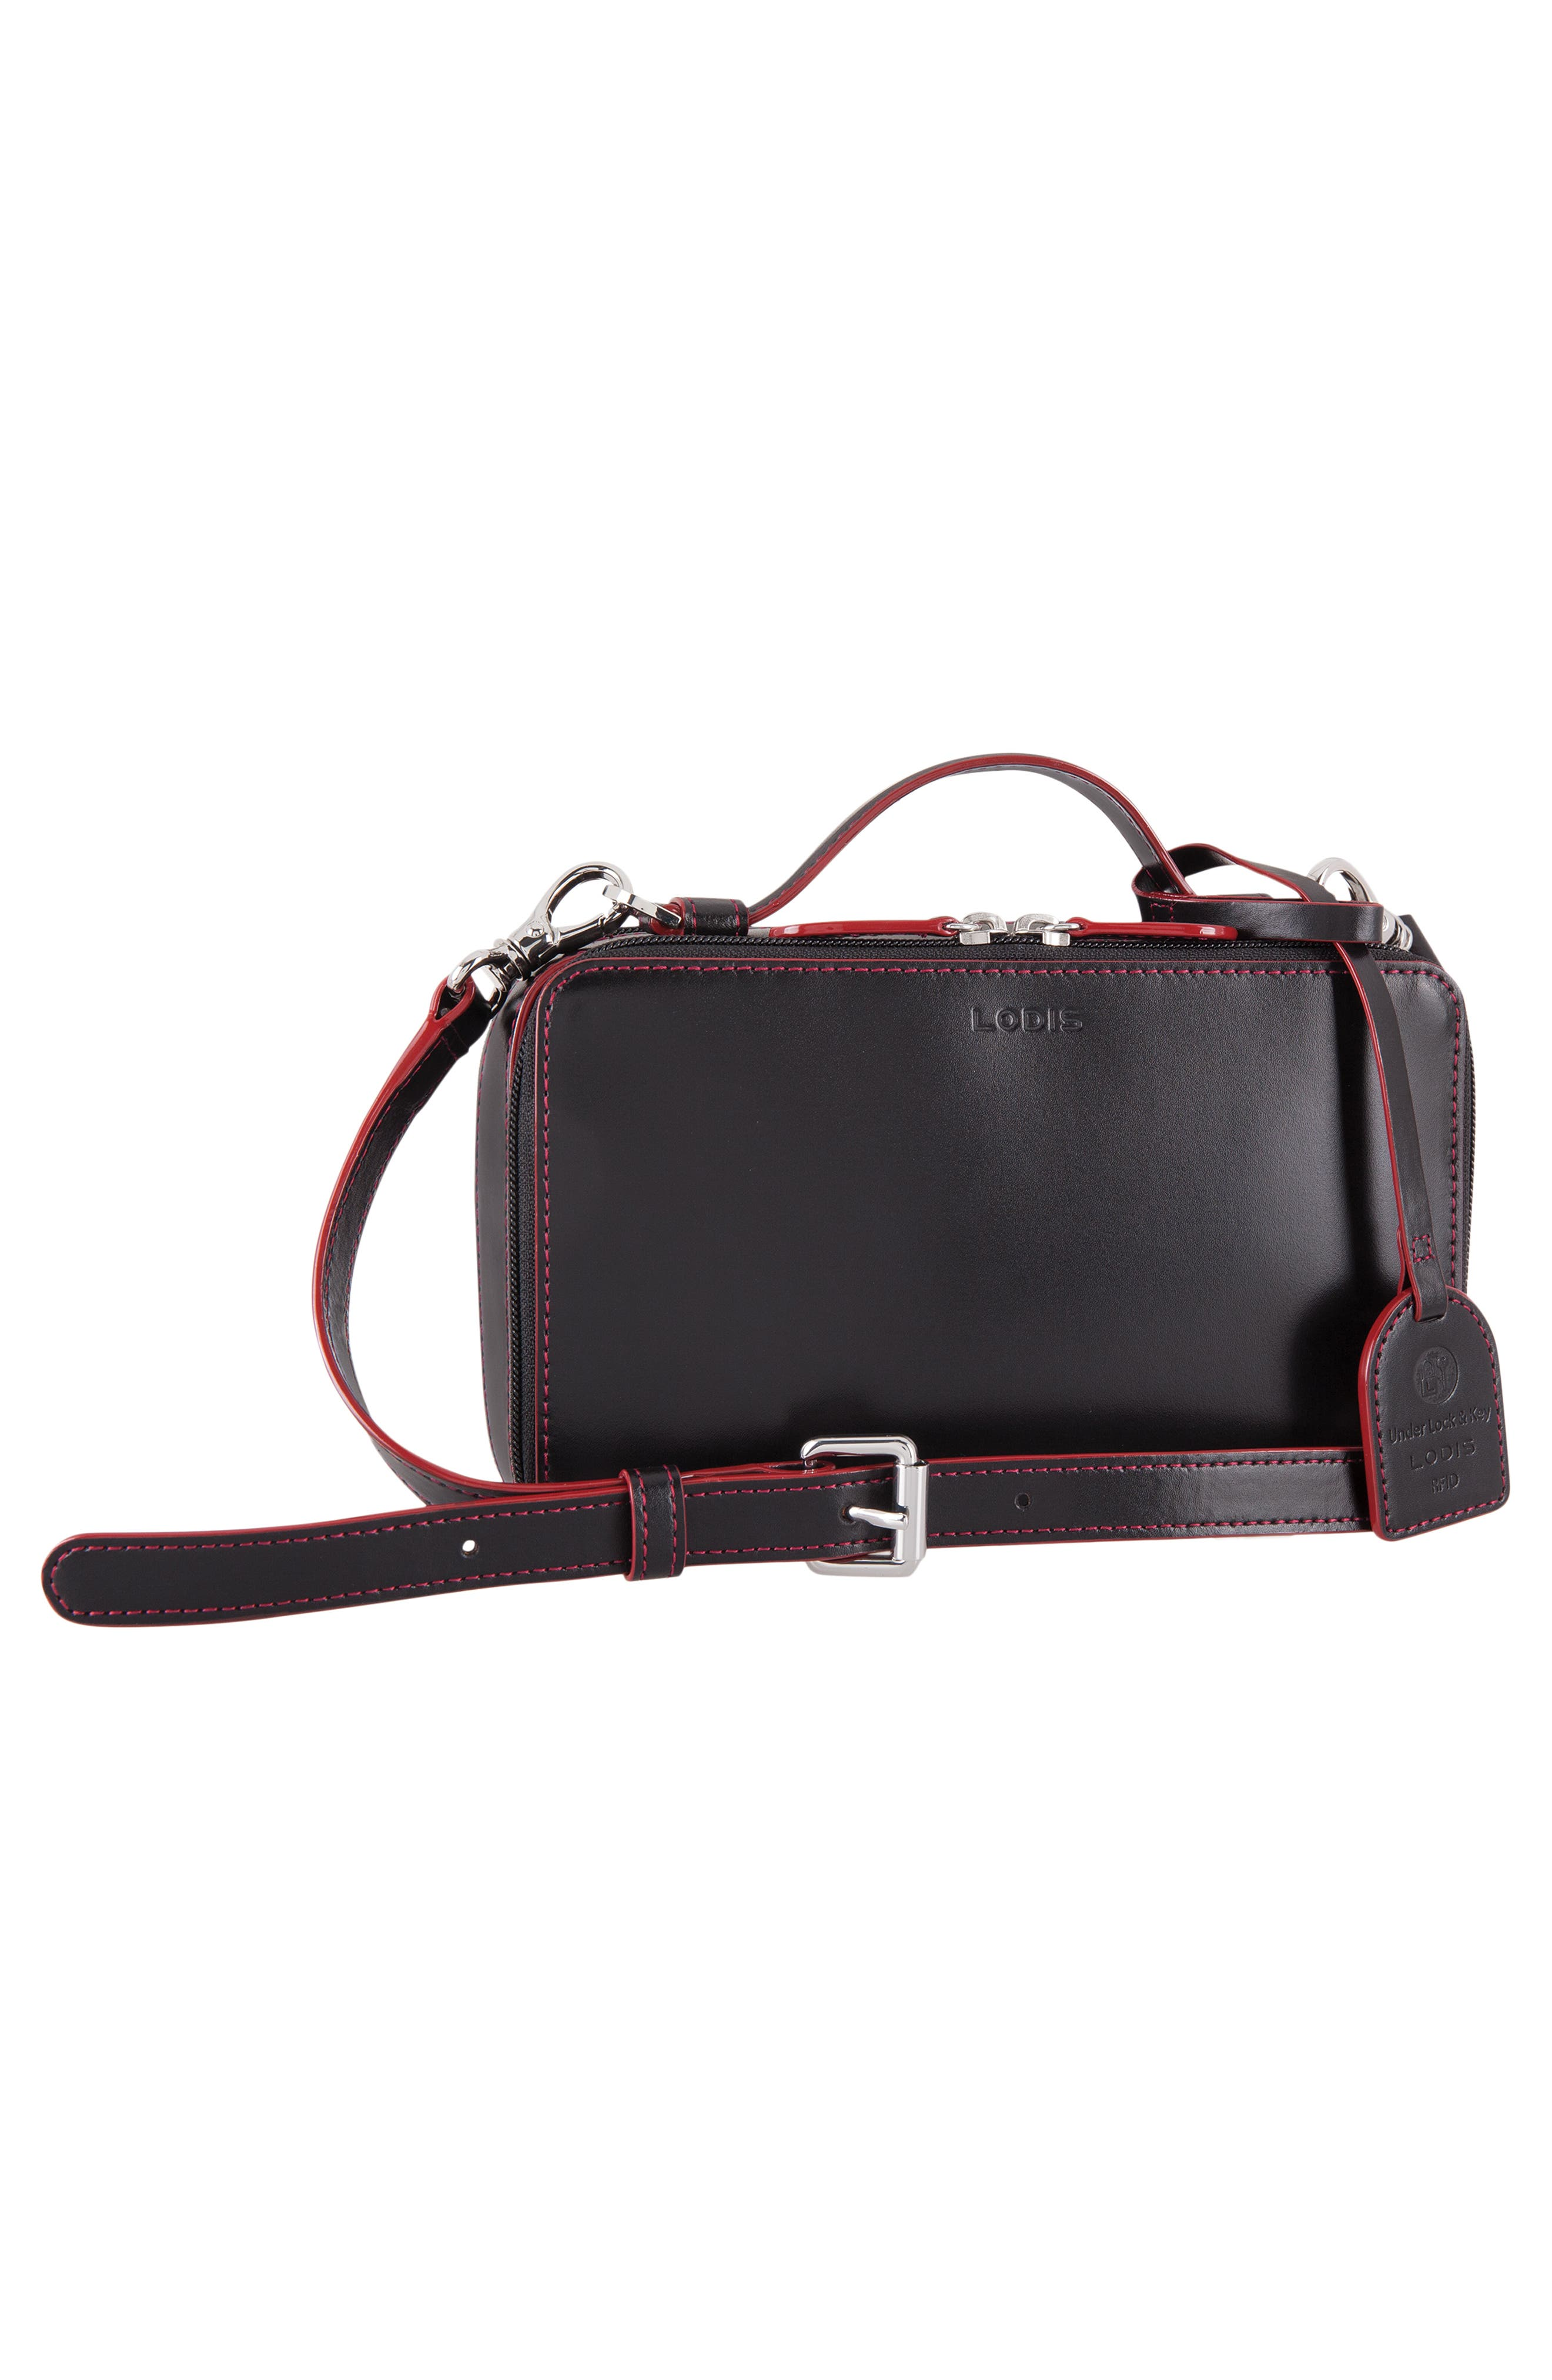 Downtown Sally RFID Zip-Around Leather Crossbody Bag,                             Alternate thumbnail 7, color,                             BLACK